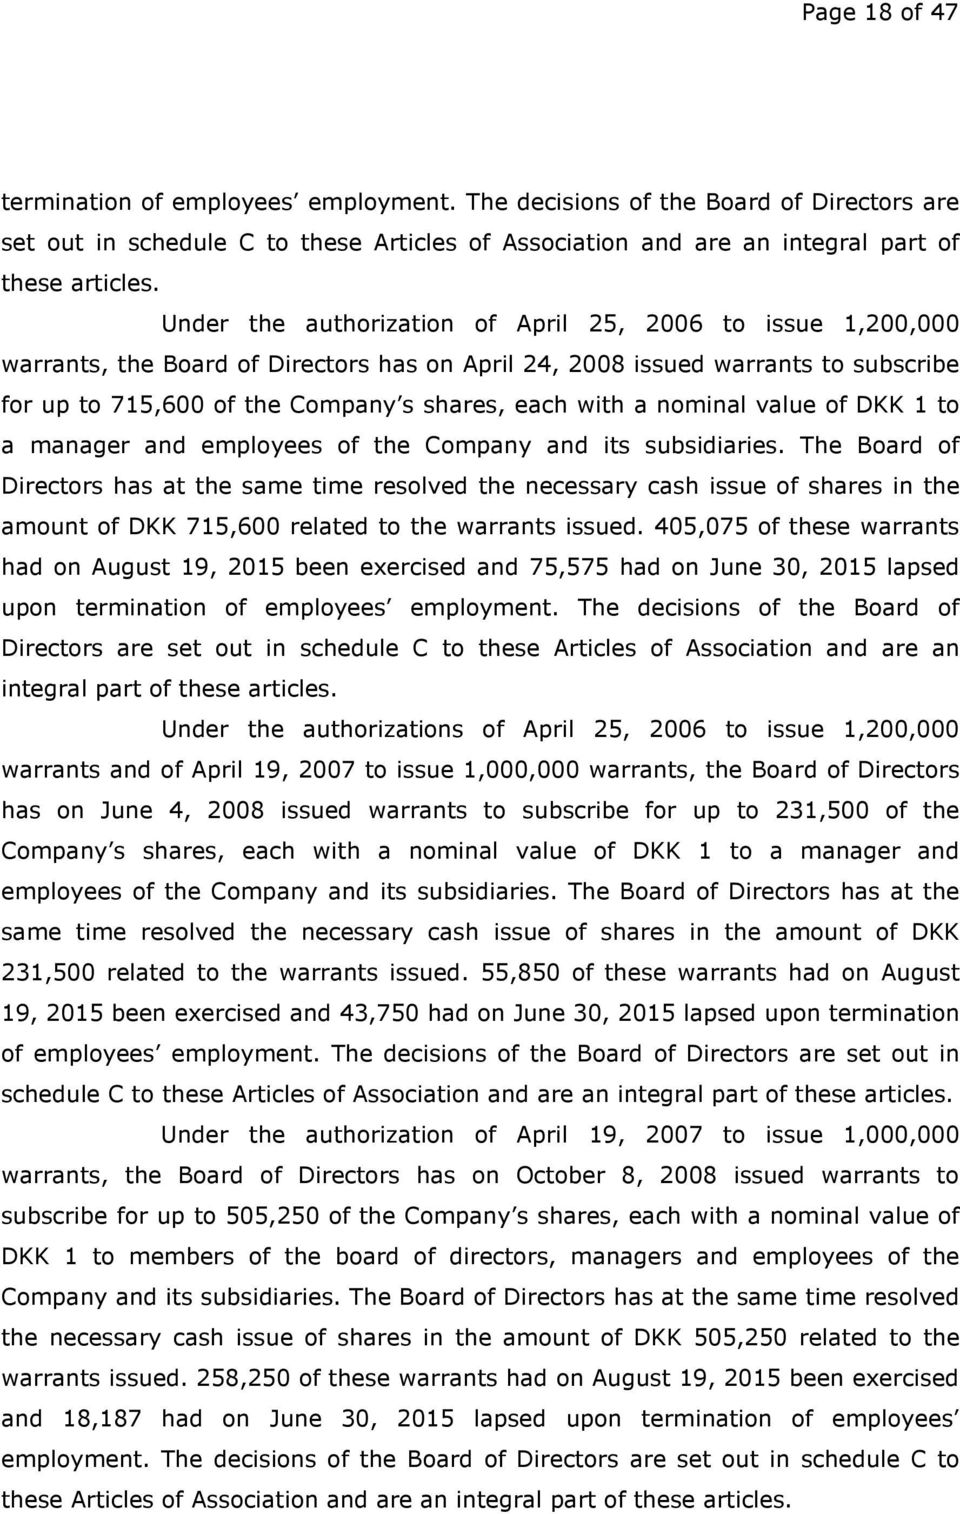 nominal value of DKK 1 to a manager and employees of the Company and its subsidiaries.